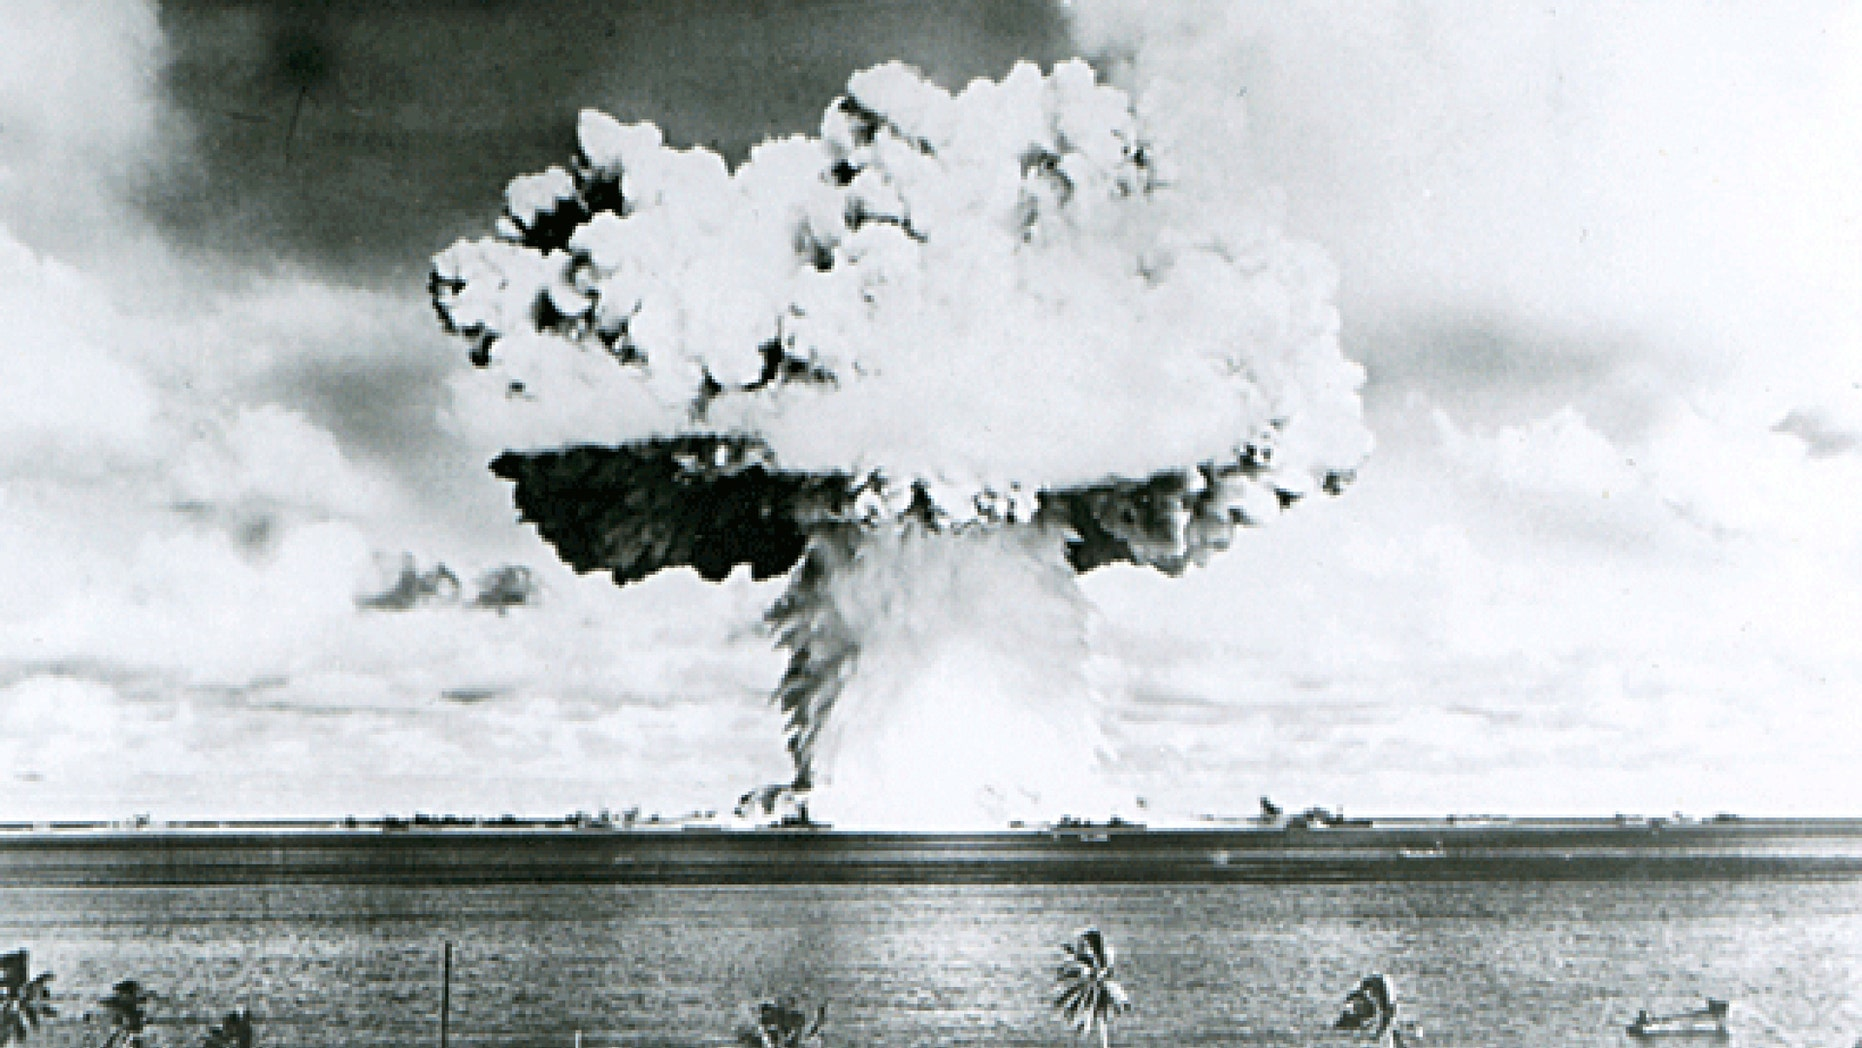 This U.S. Navy handout image shows Baker, the second of the two atomic bomb tests, in which a 63-kiloton warhead was exploded 90 feet under water as part of Operation Crossroads, conducted at Bikini Atoll in July 1946 to measure nuclear weapon effects on warships. (REUTERS/U.S. Navy/Handout via Reuters)